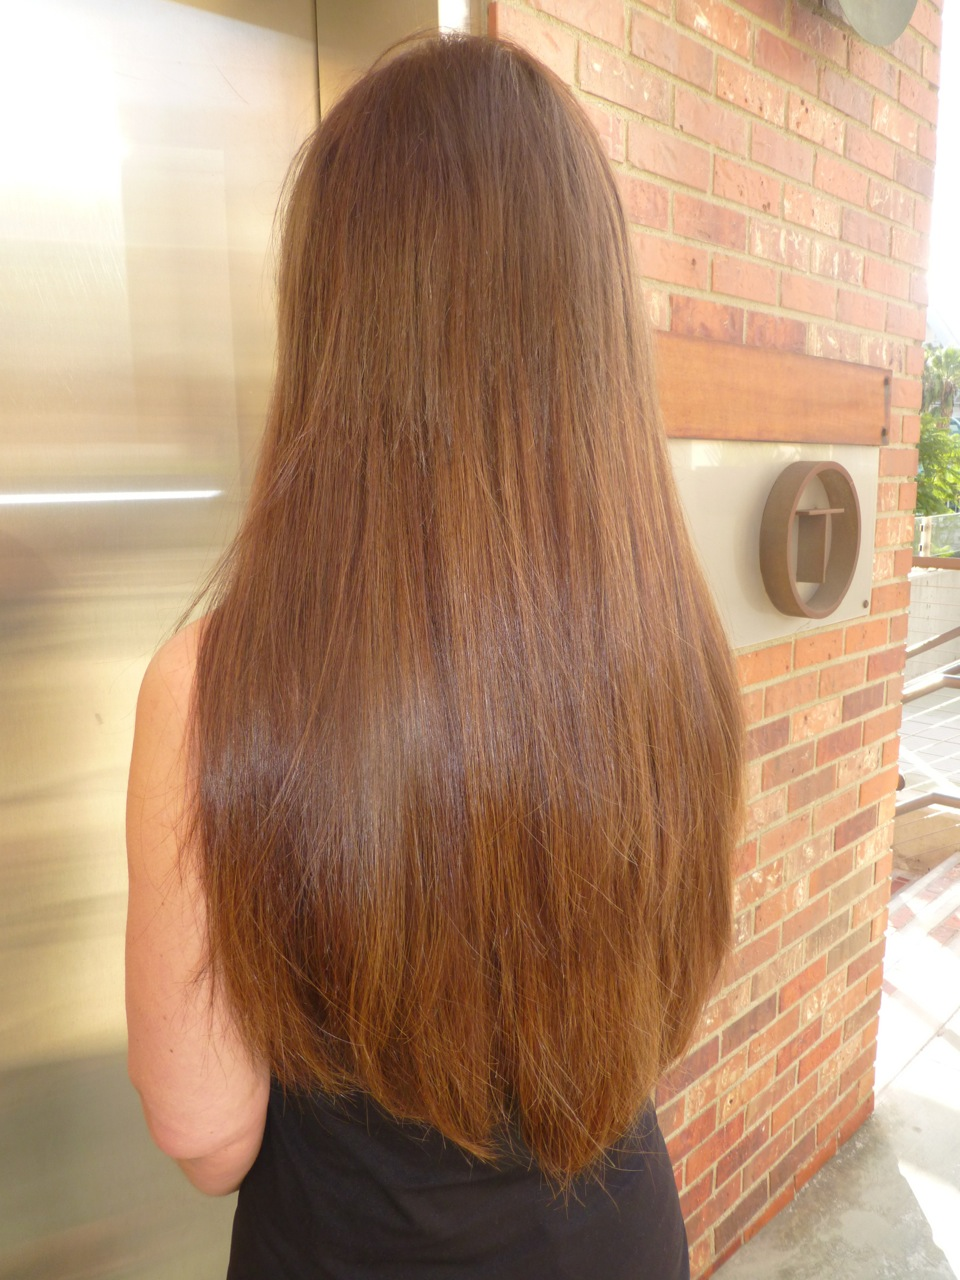 Gallery The Hair You Wear San Diego Hair Extensions And Hair Color